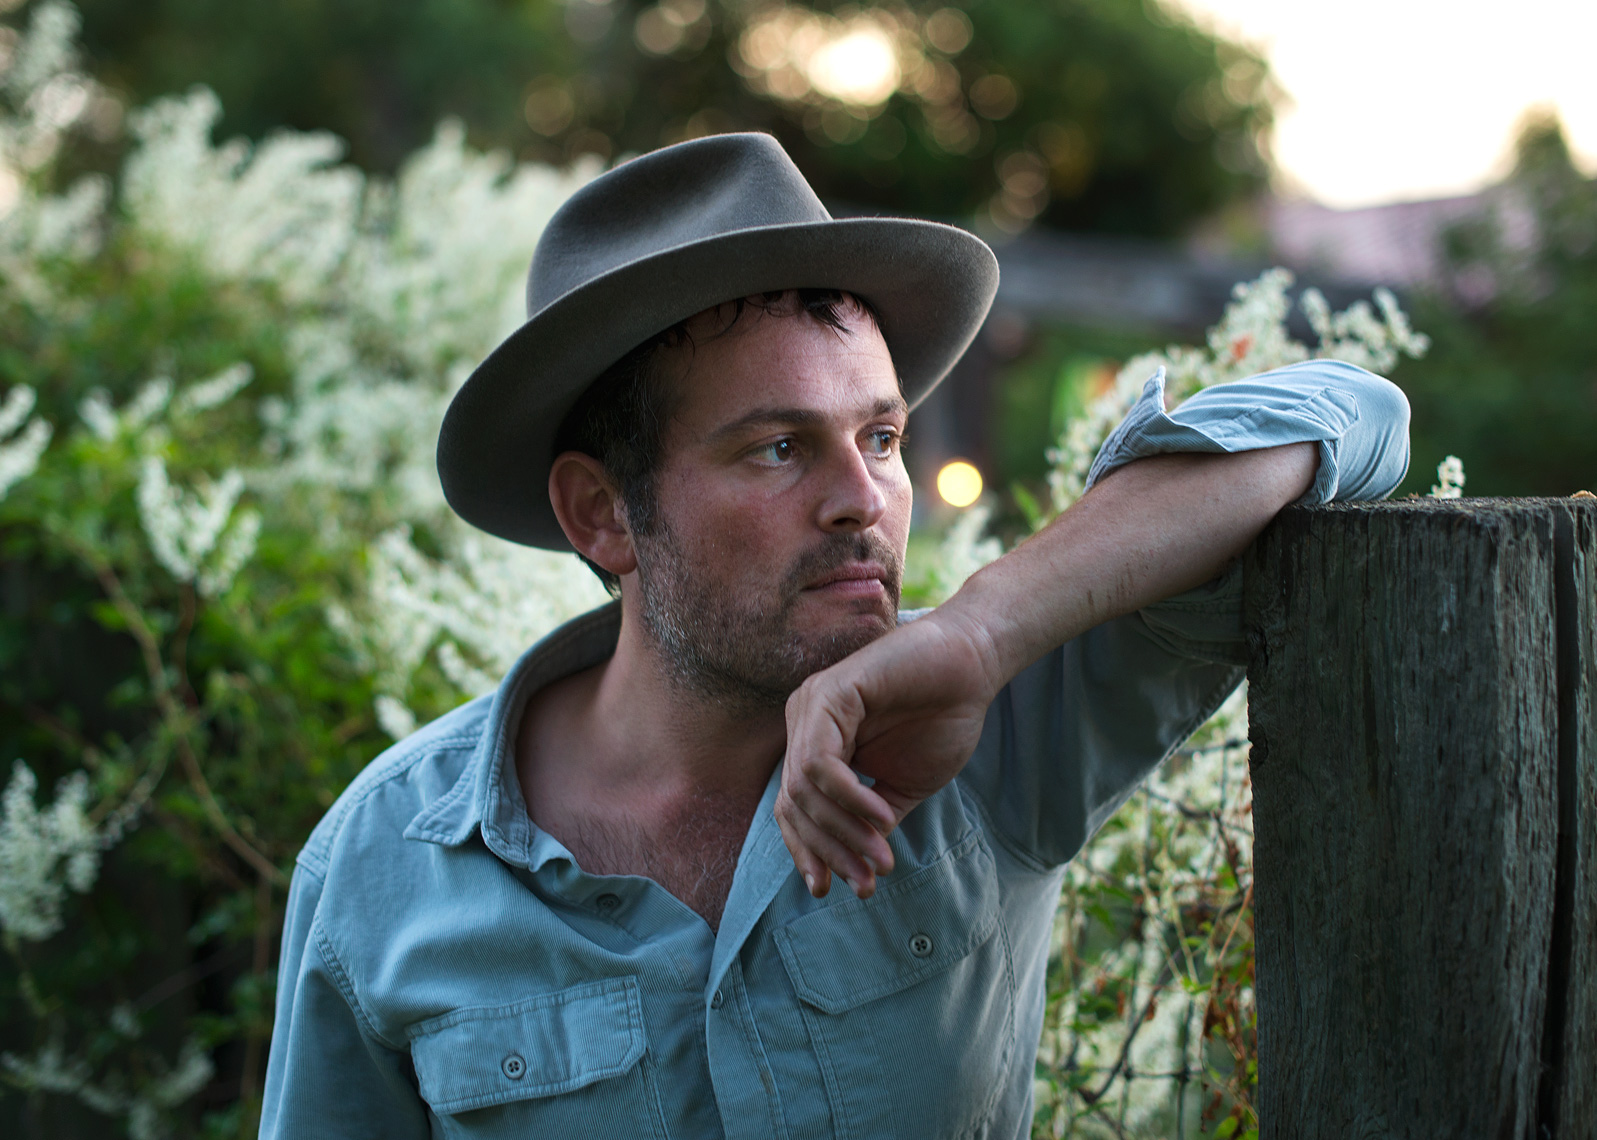 Gregory_Alan_Isakov_Portrait_015.JPG